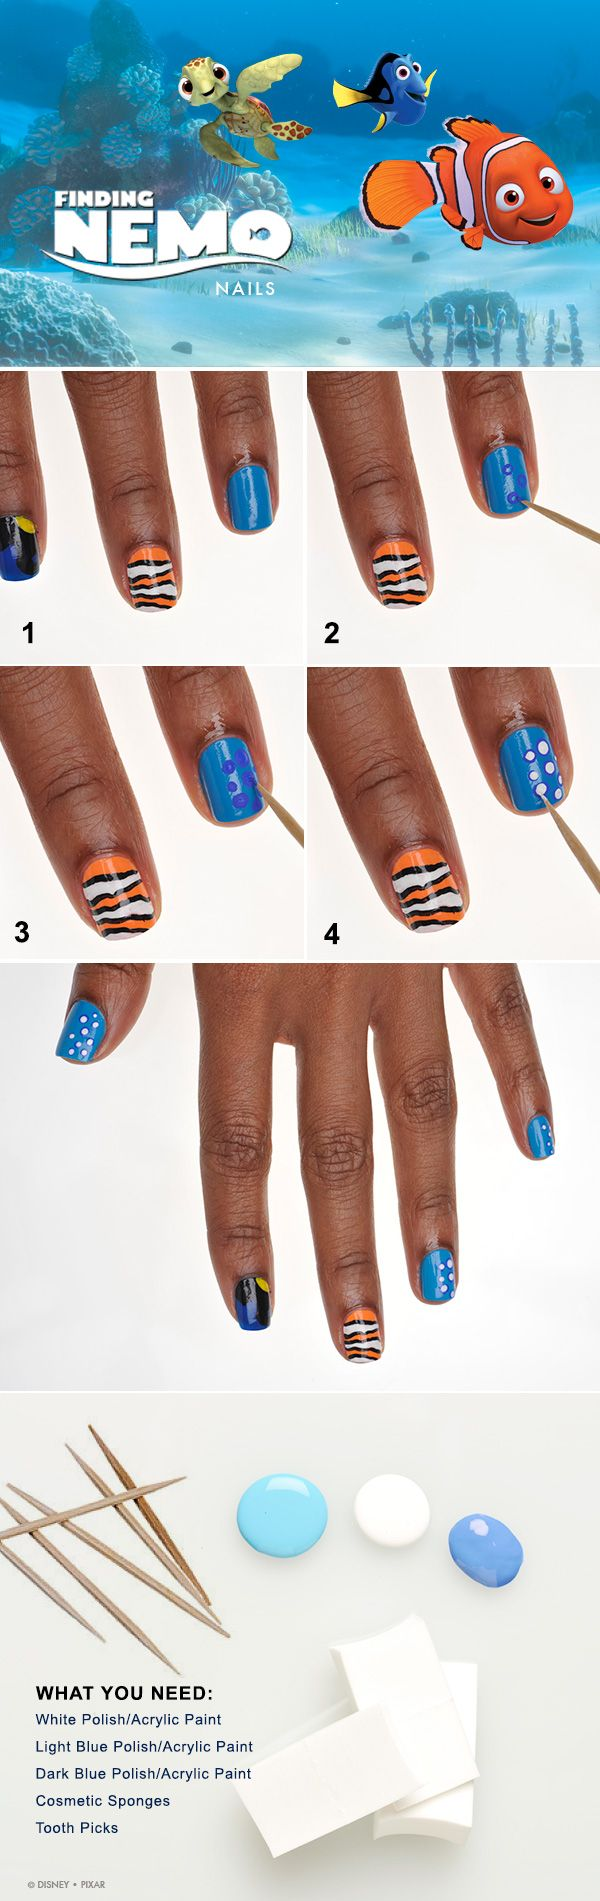 Show Your Disney Side: Nemo-Inspired Nail Tutorial